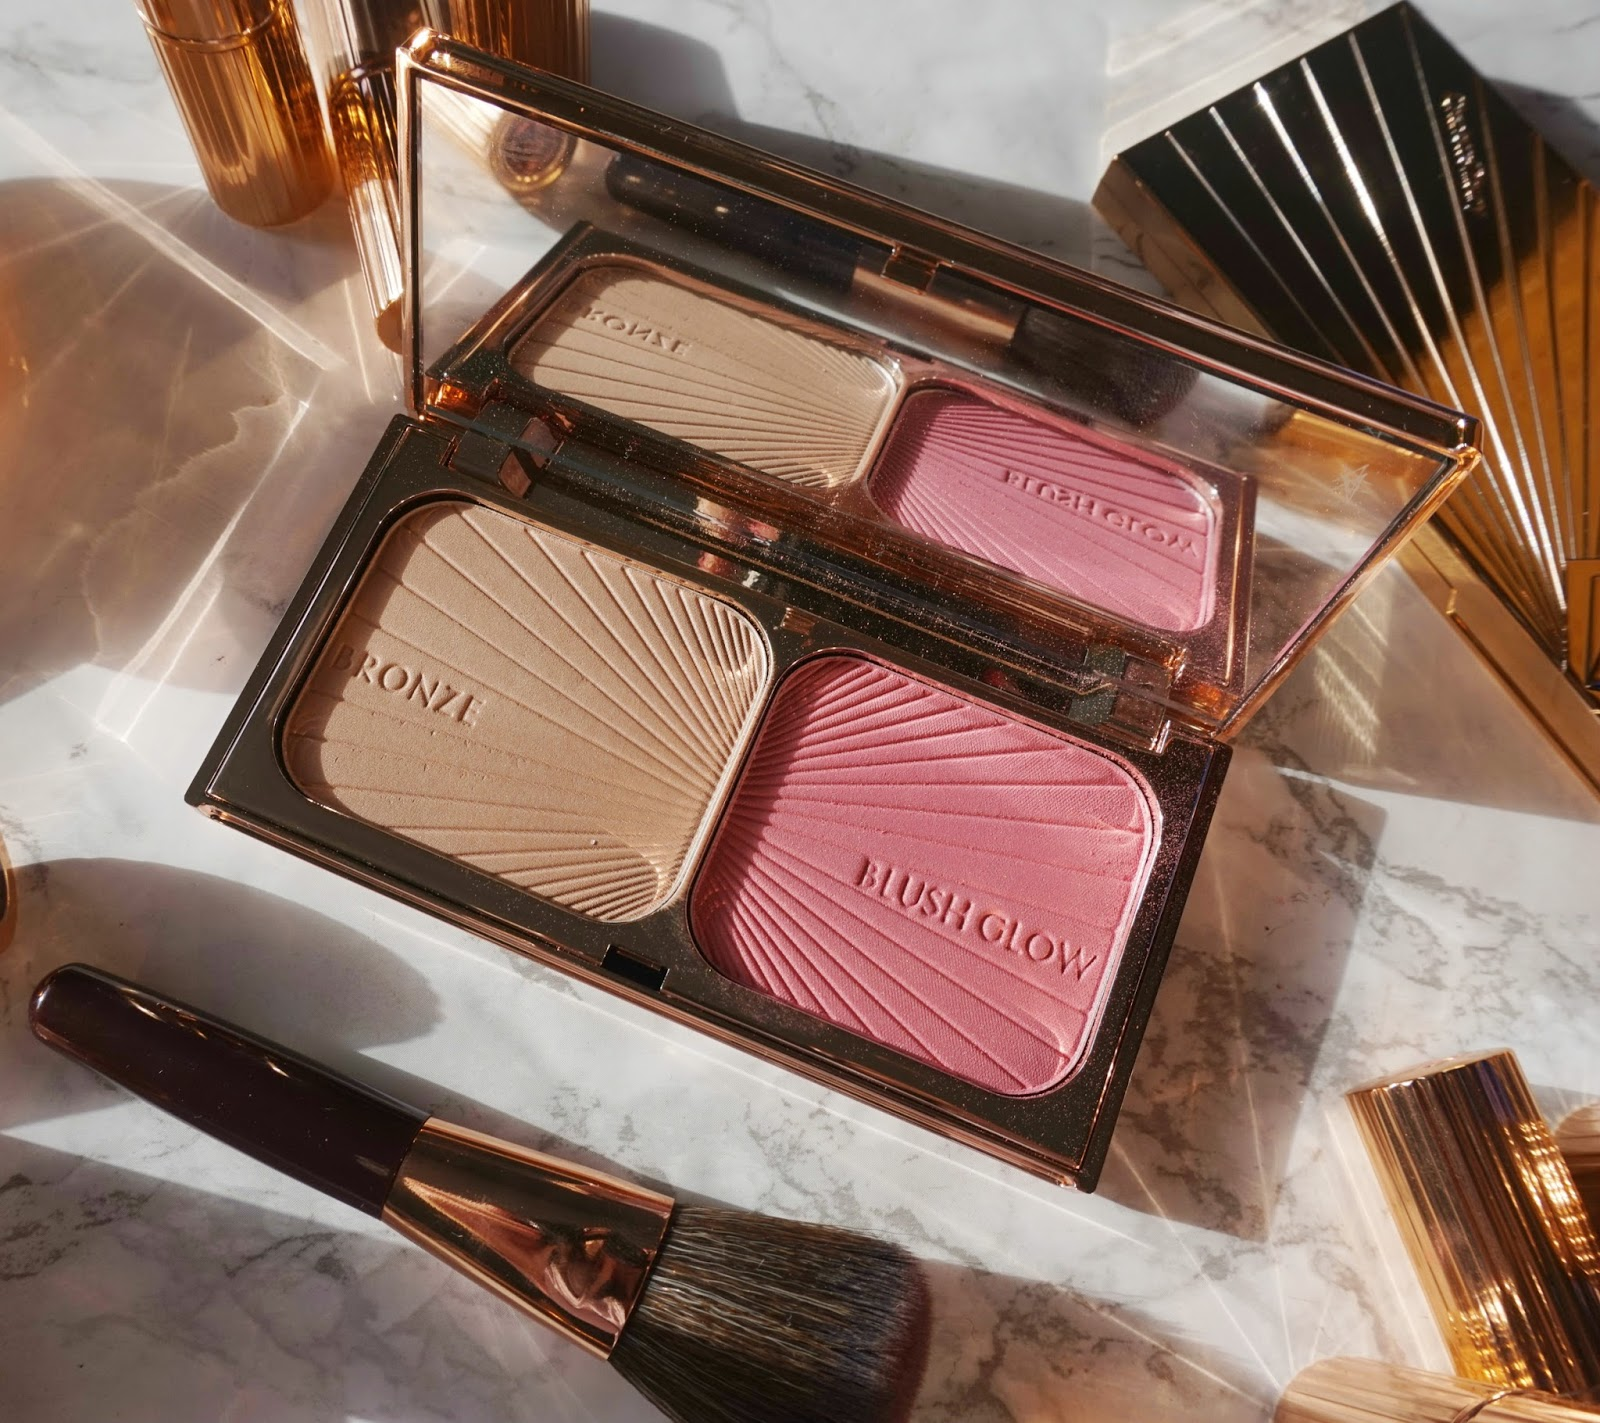 Charlotte Tilbury Bronze & Blush Review & Swatches & Giveaway